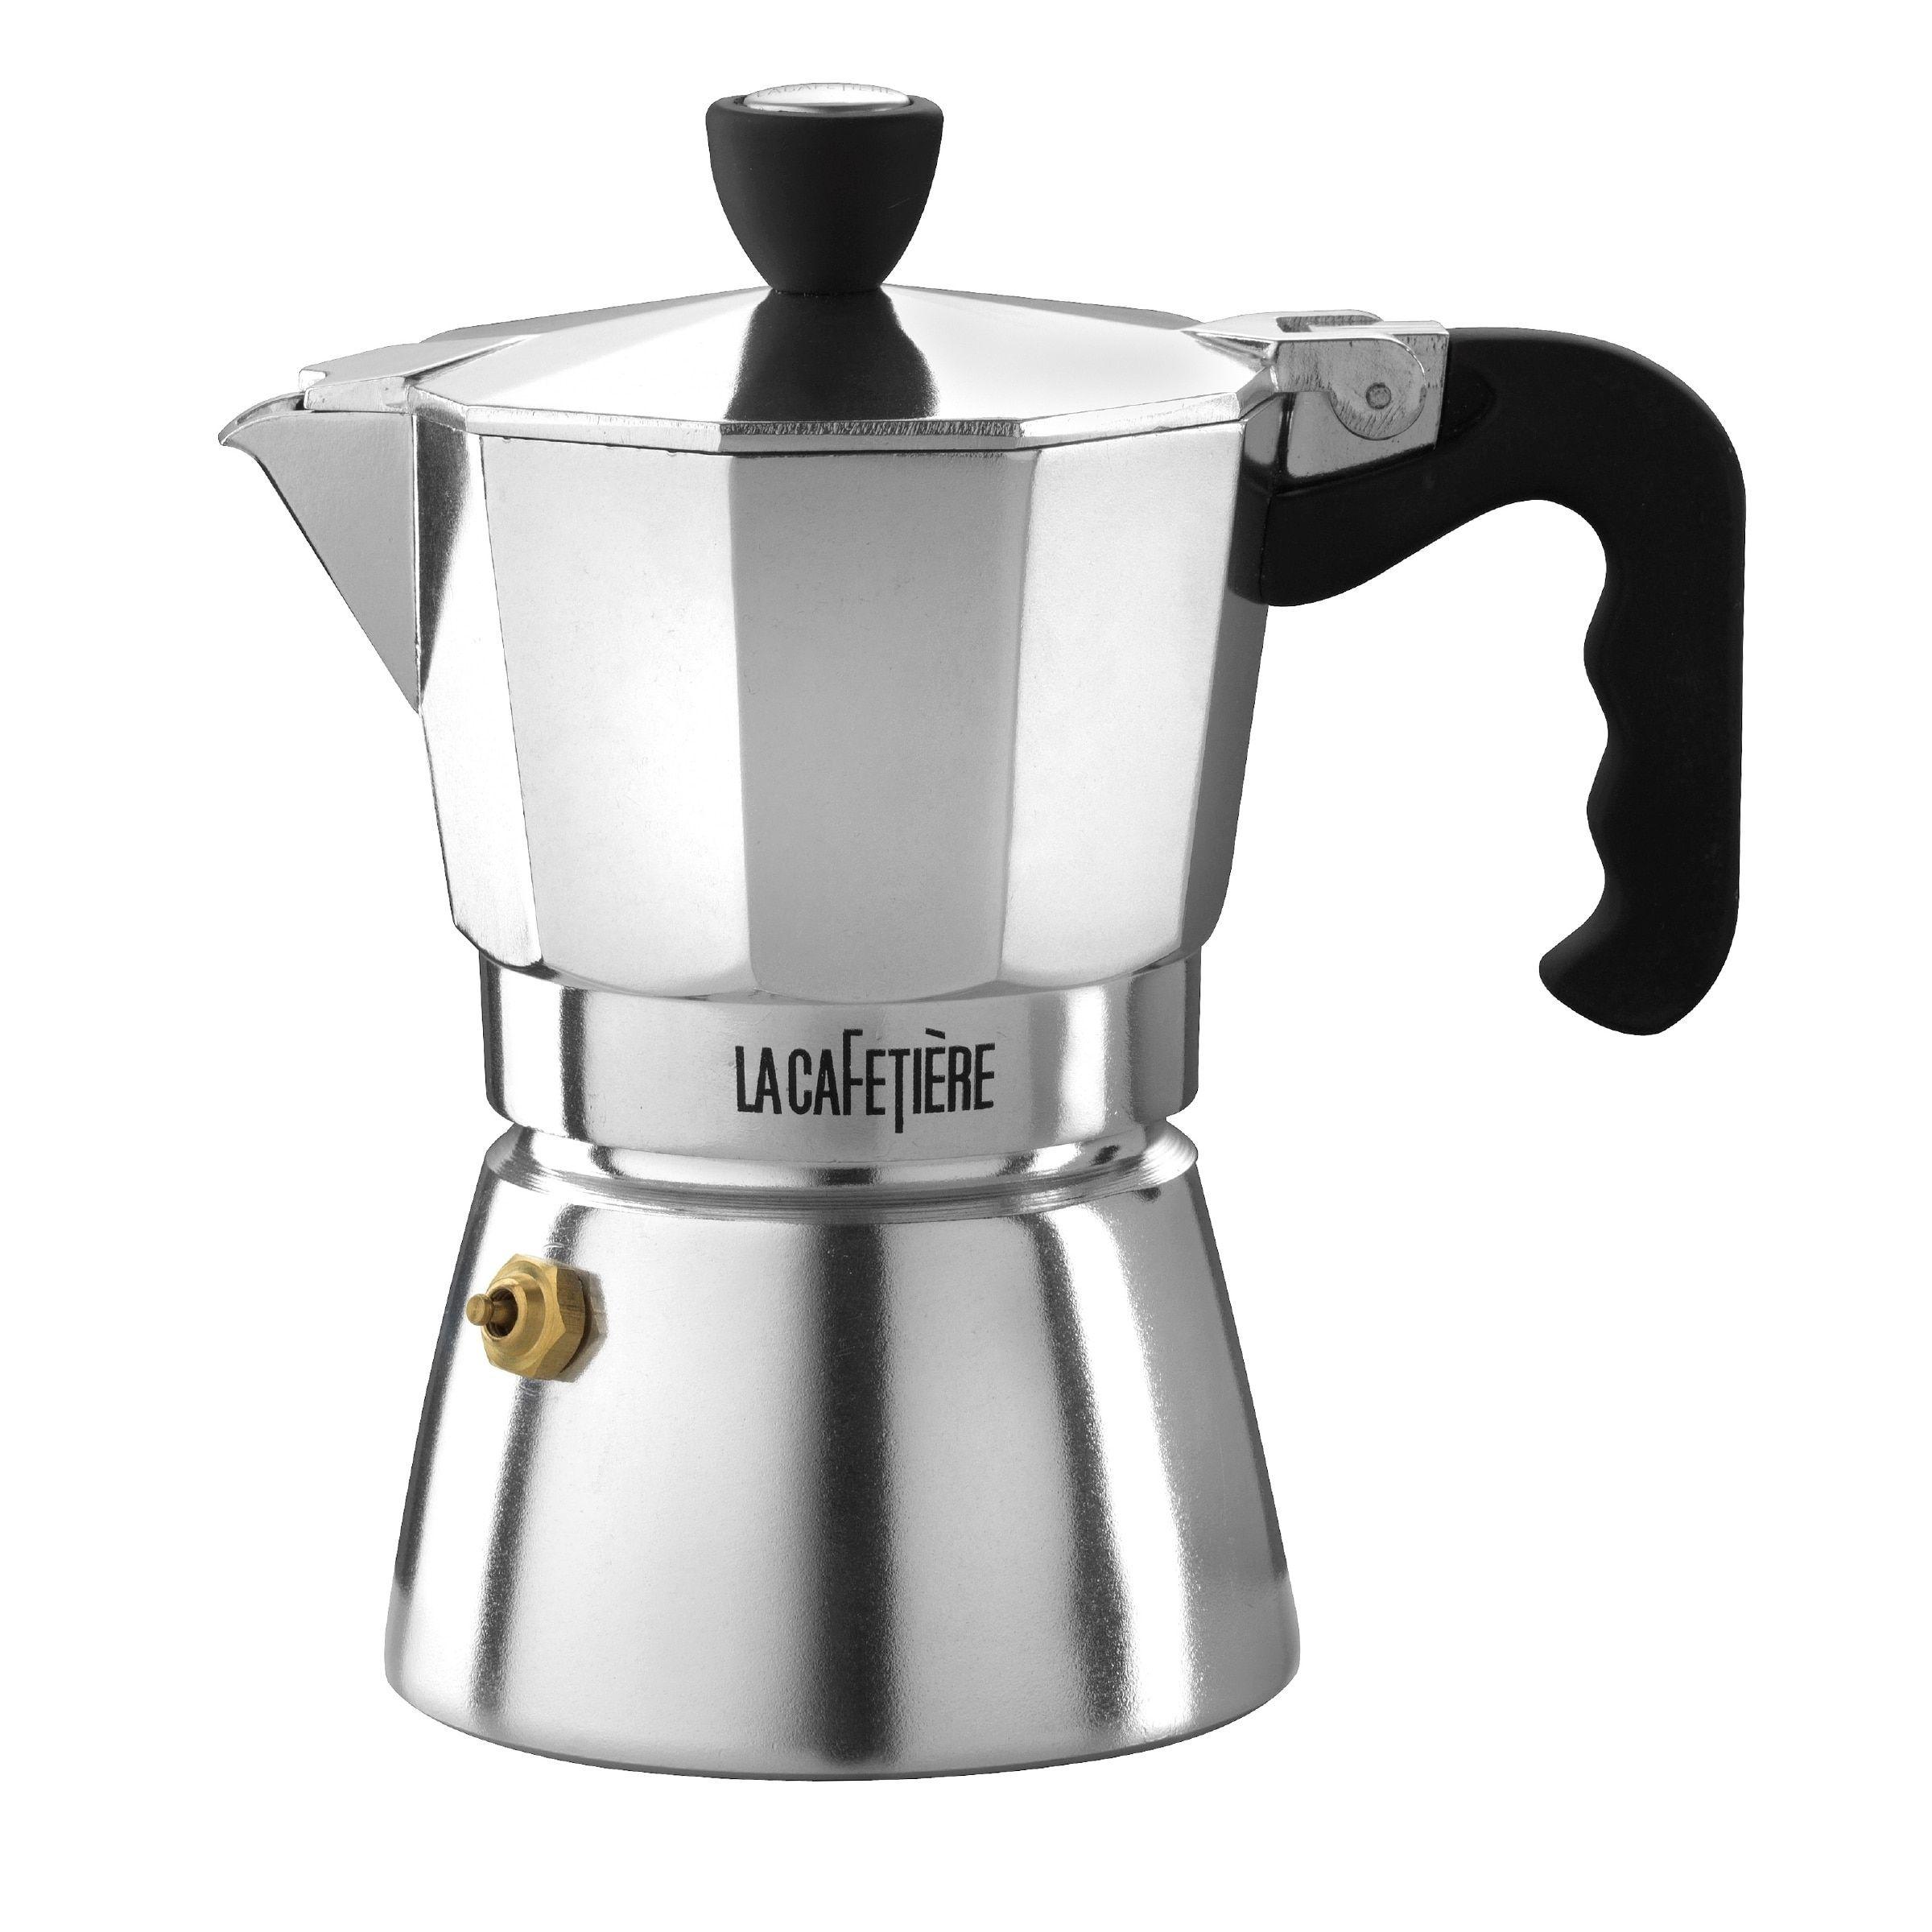 Lacafetiere Stovetop Espresso, Classic Polished, 3 Cup ** You Will